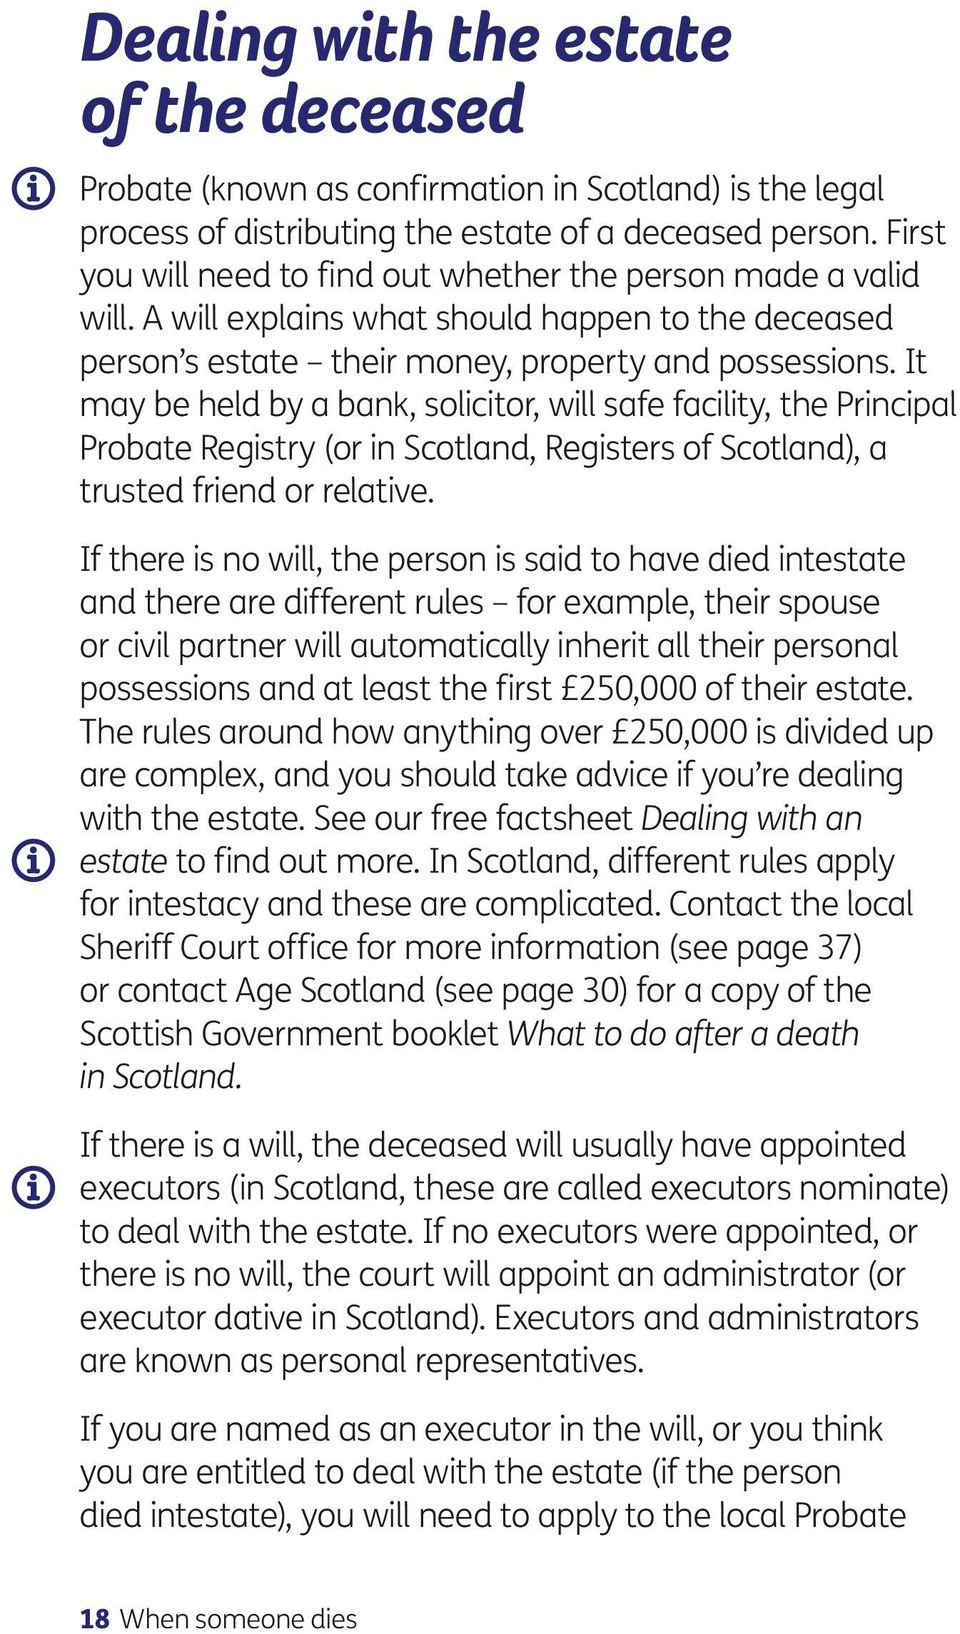 It may be held by a bank, solicitor, will safe facility, the Principal Probate Registry (or in Scotland, Registers of Scotland), a trusted friend or relative.